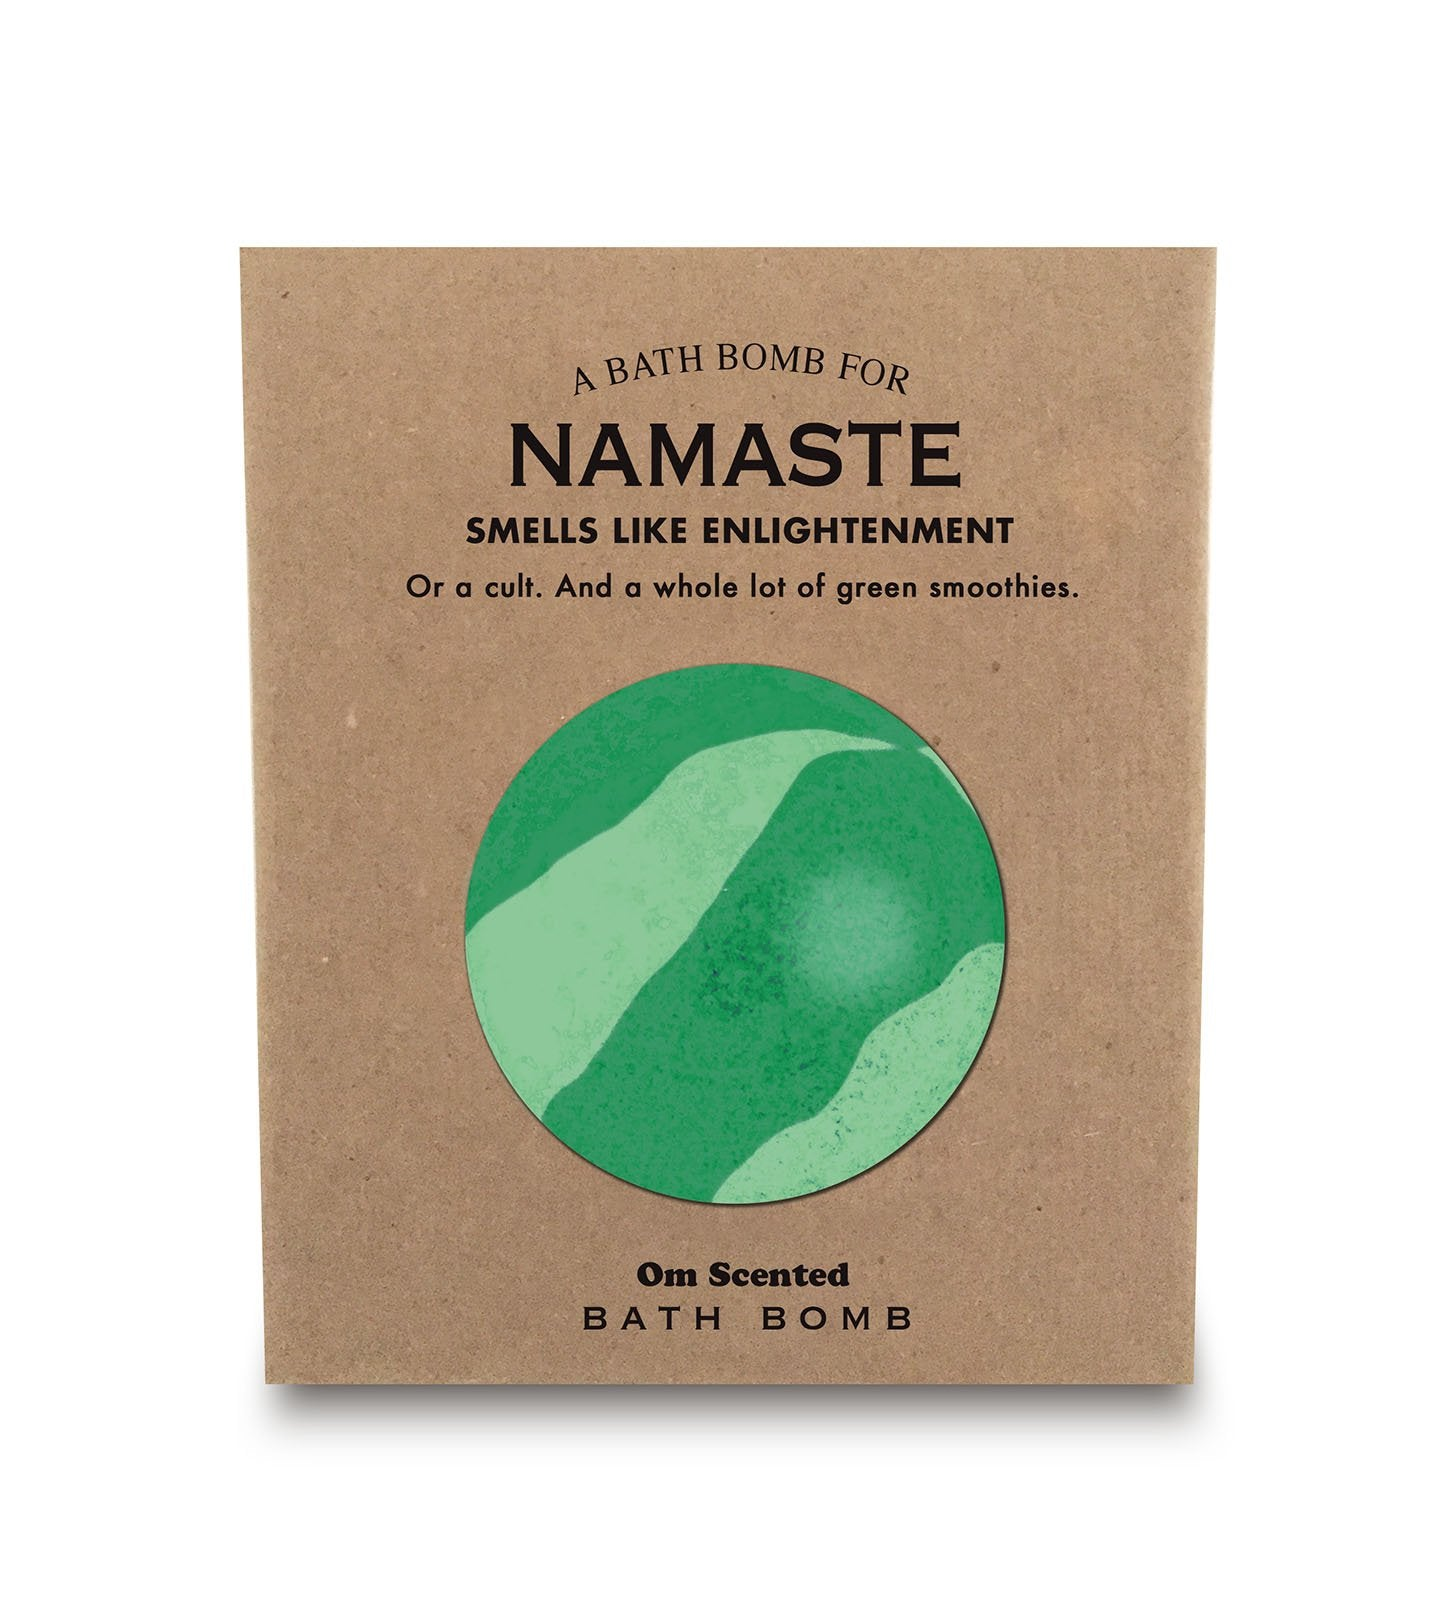 Bath Bomb for Namaste - Heart of the Home PA